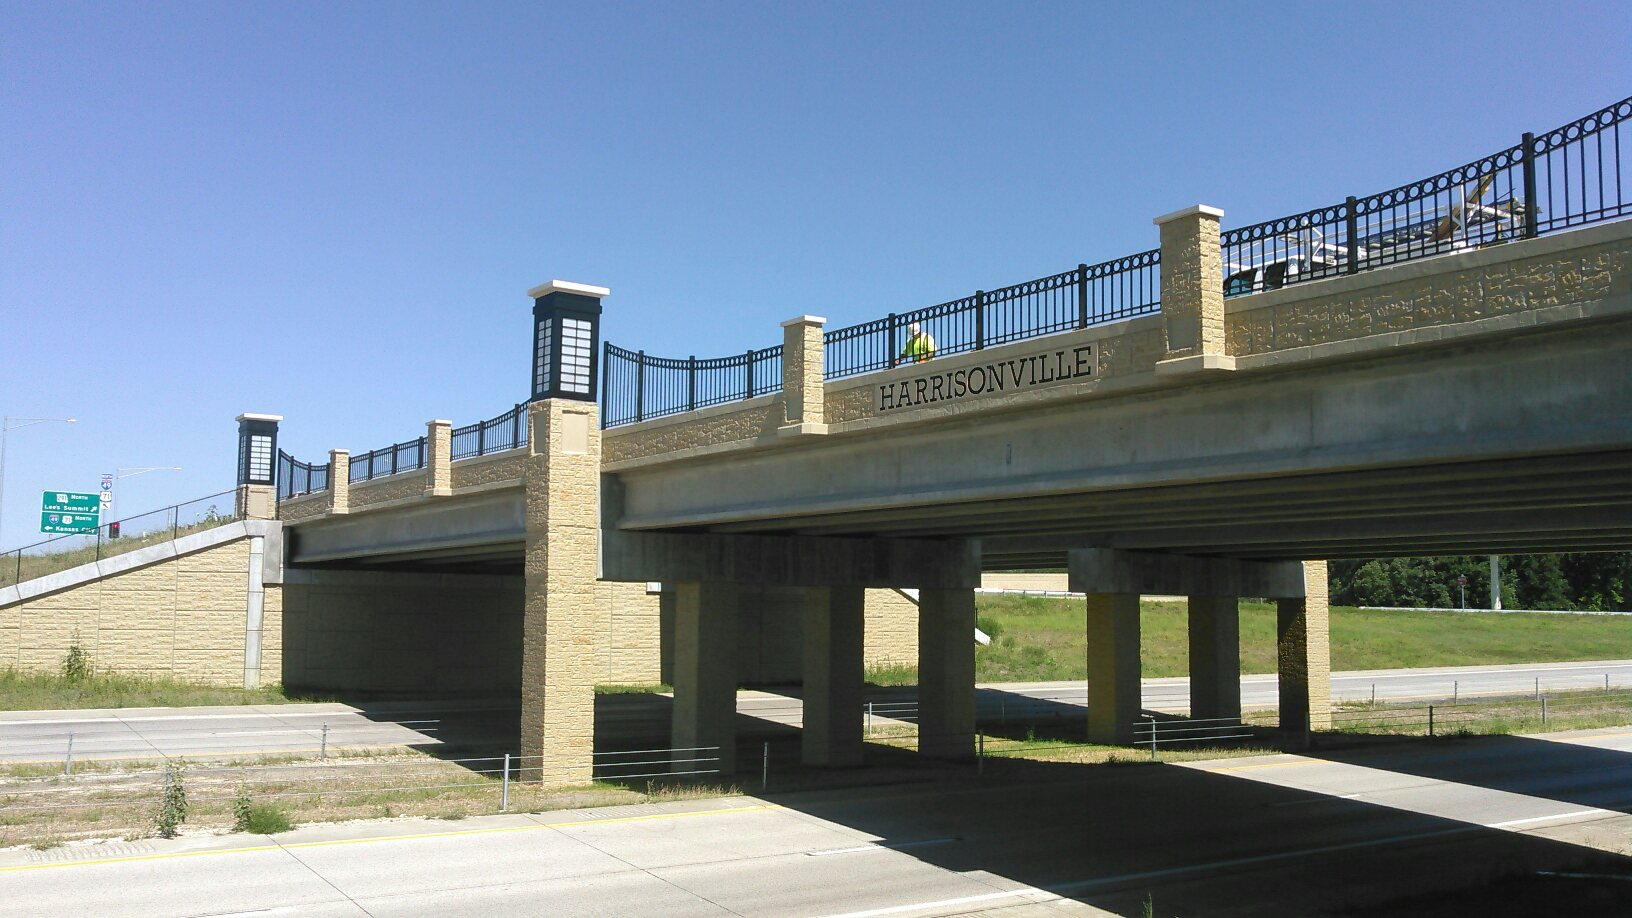 Harrisonville, MO Bridge over I-49